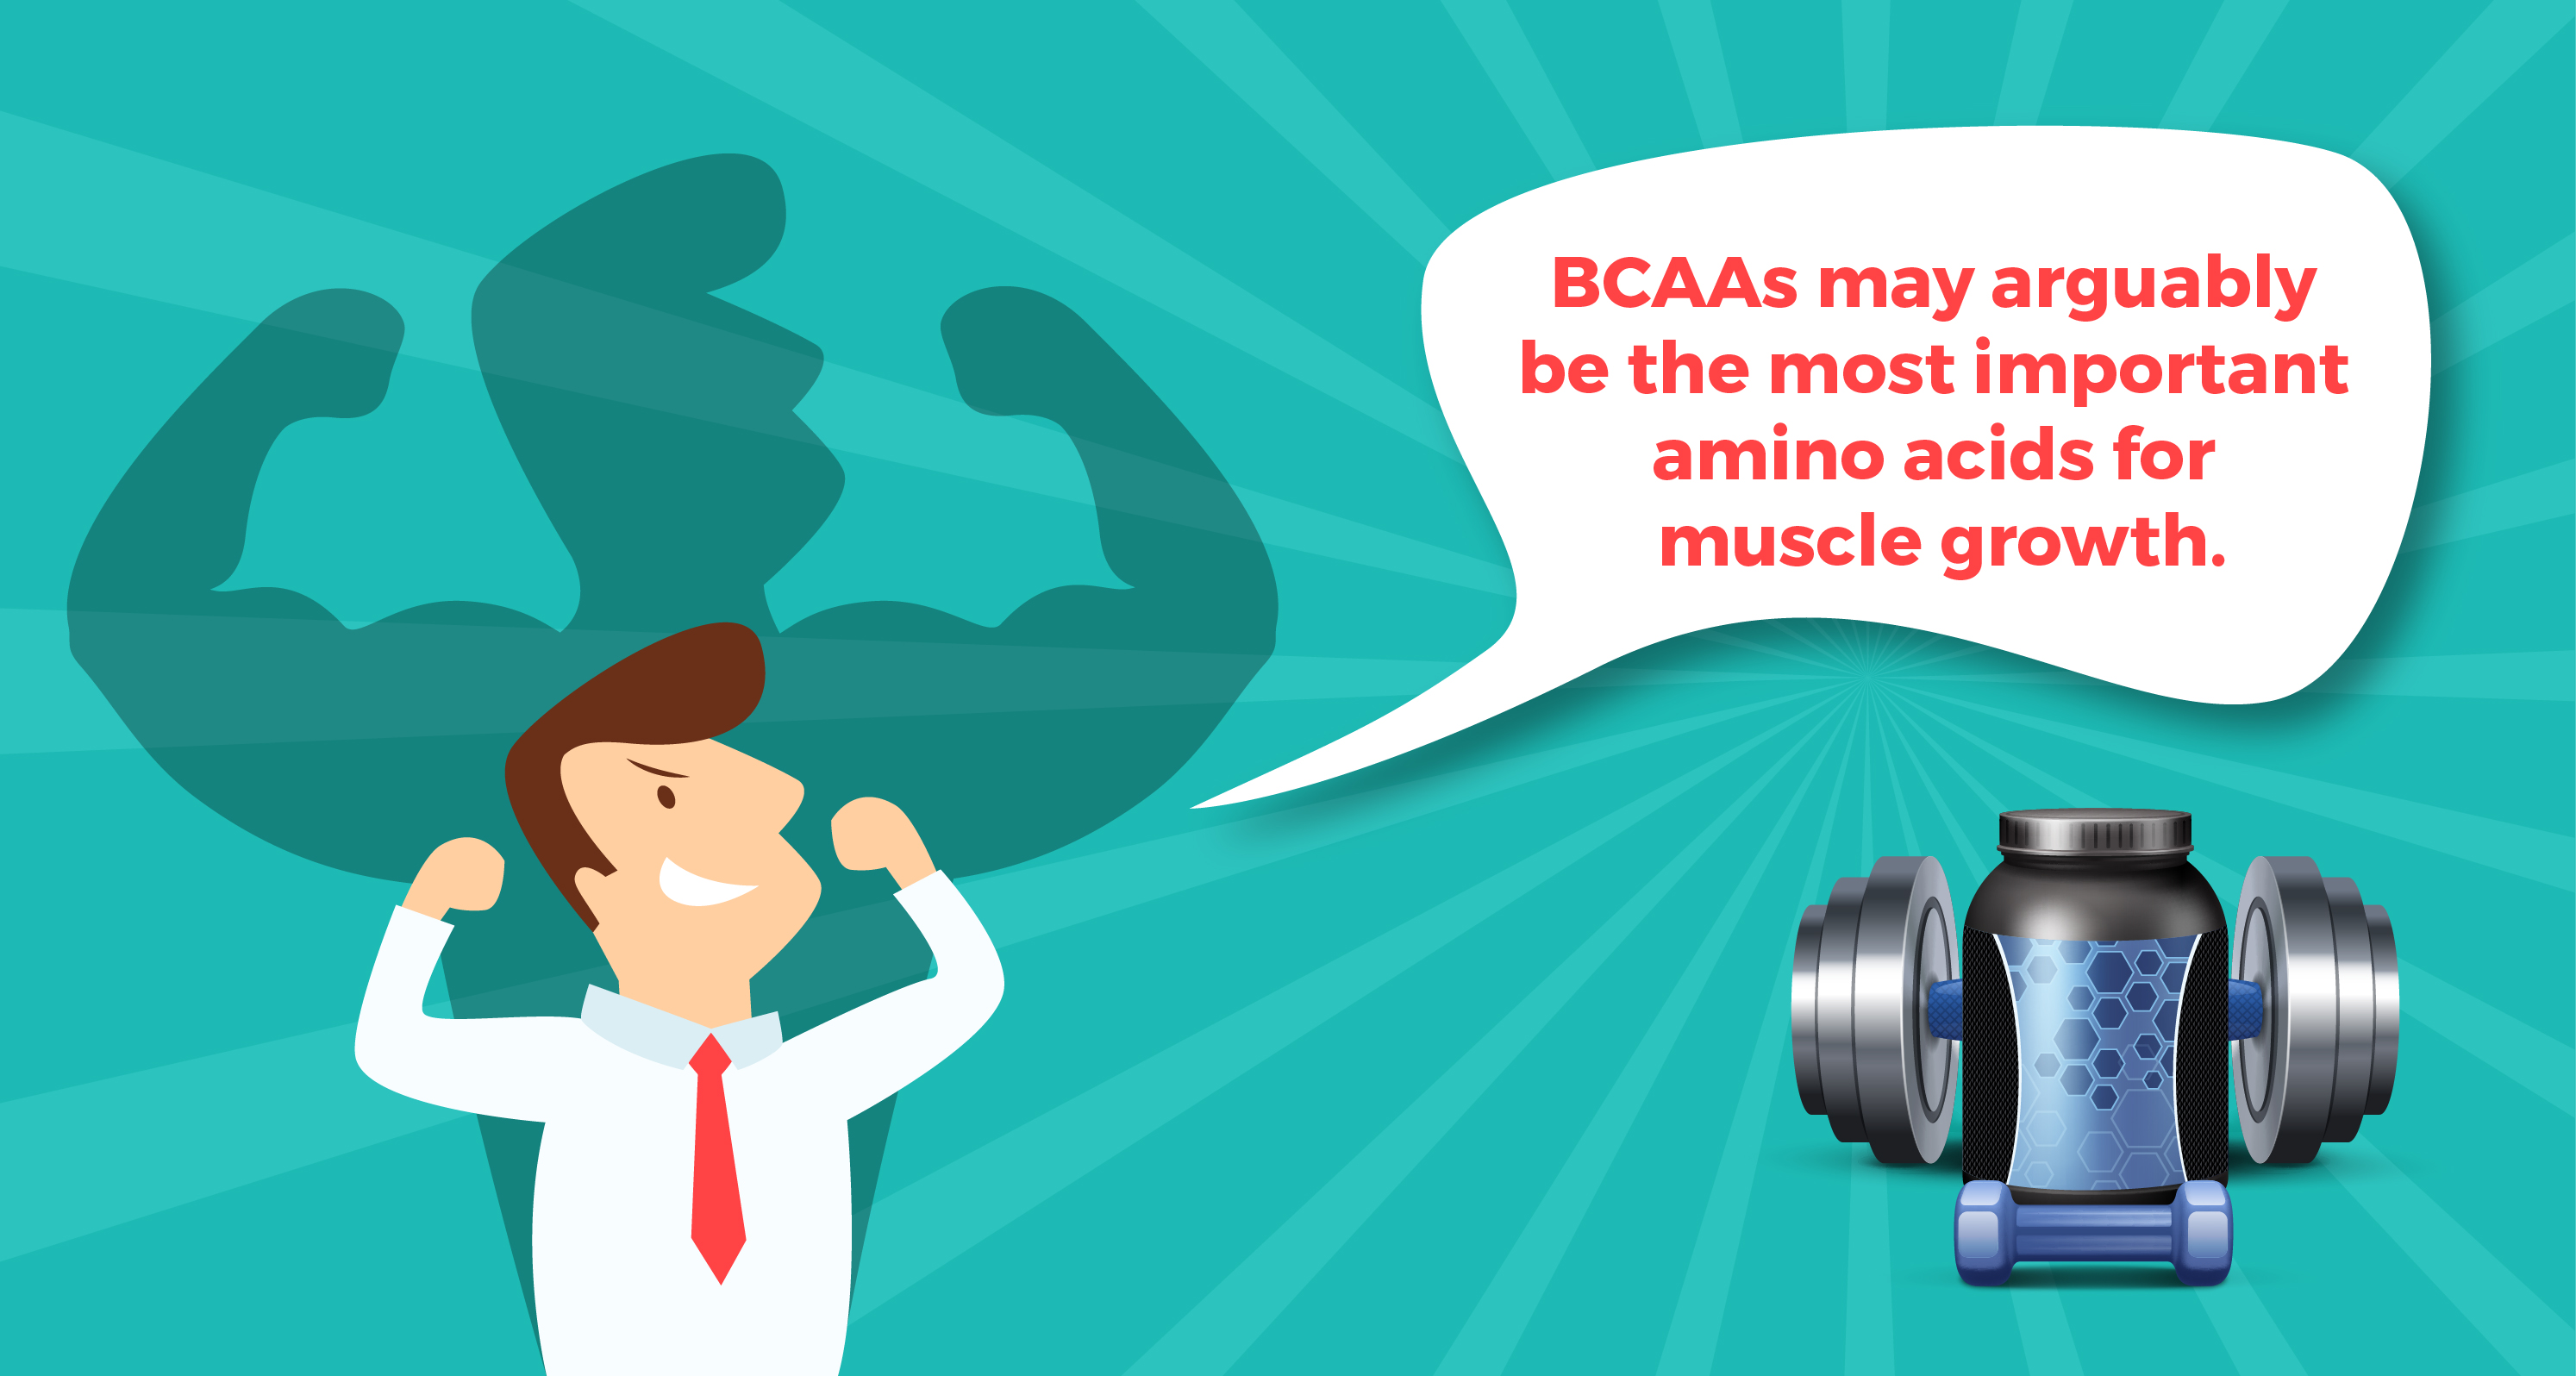 BCAAs are important for muscle growth